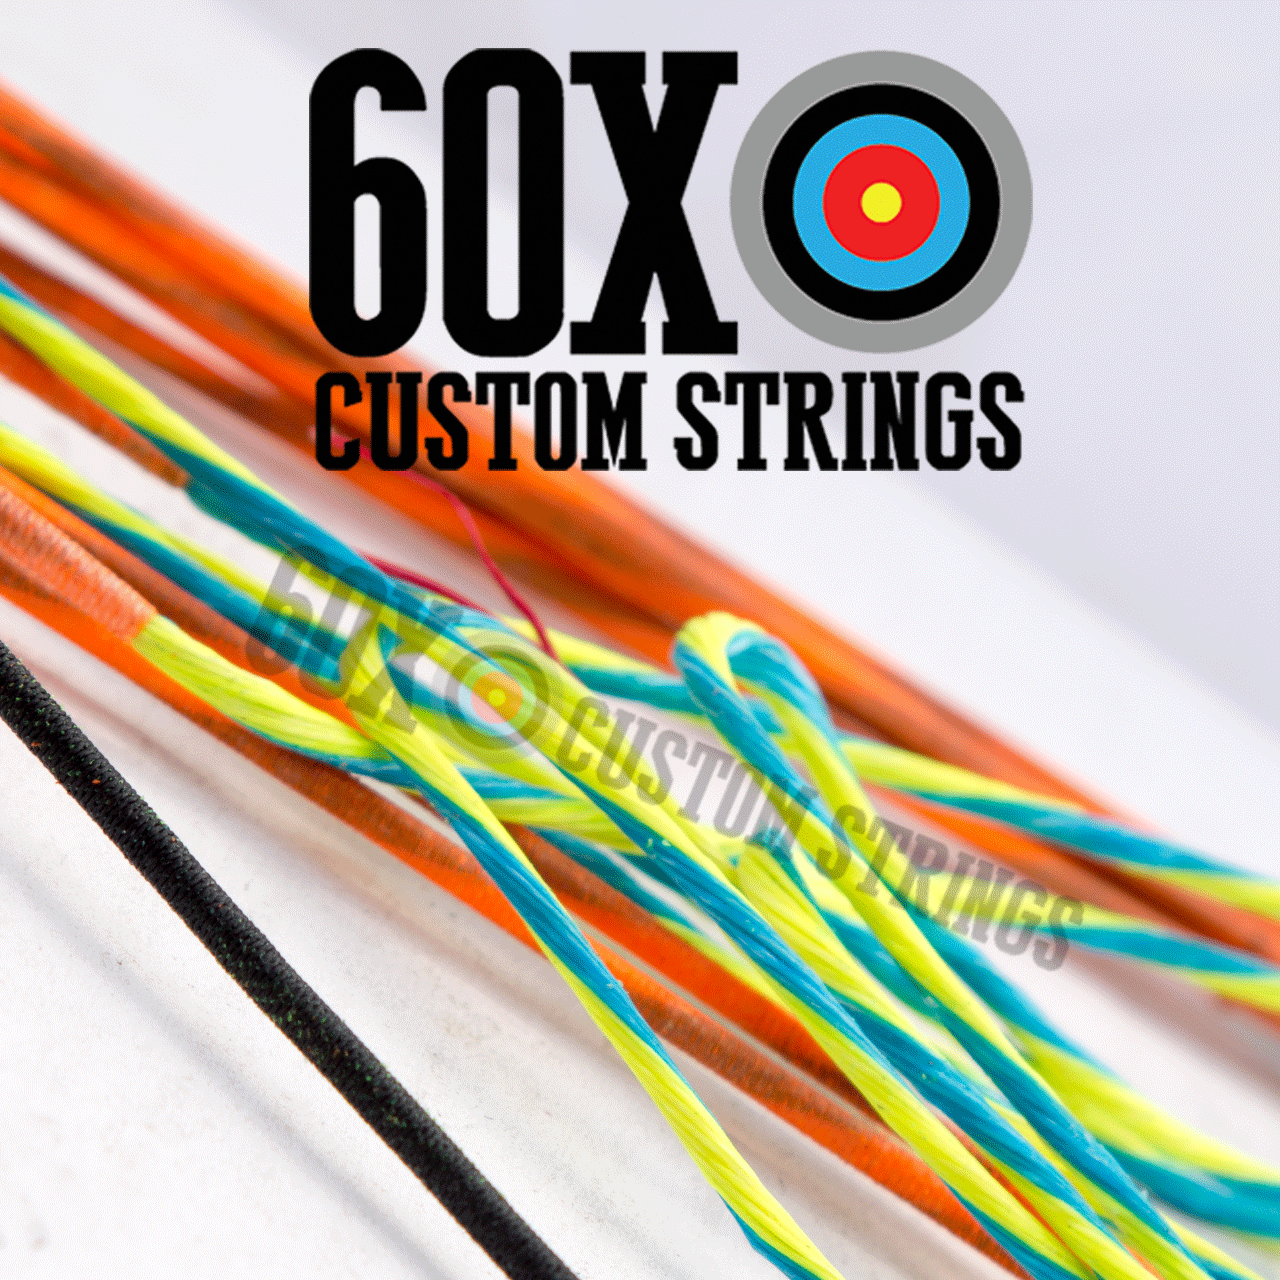 BCY-X Custom Compound Bow Strings & Cable Package - 60X Custom Strings